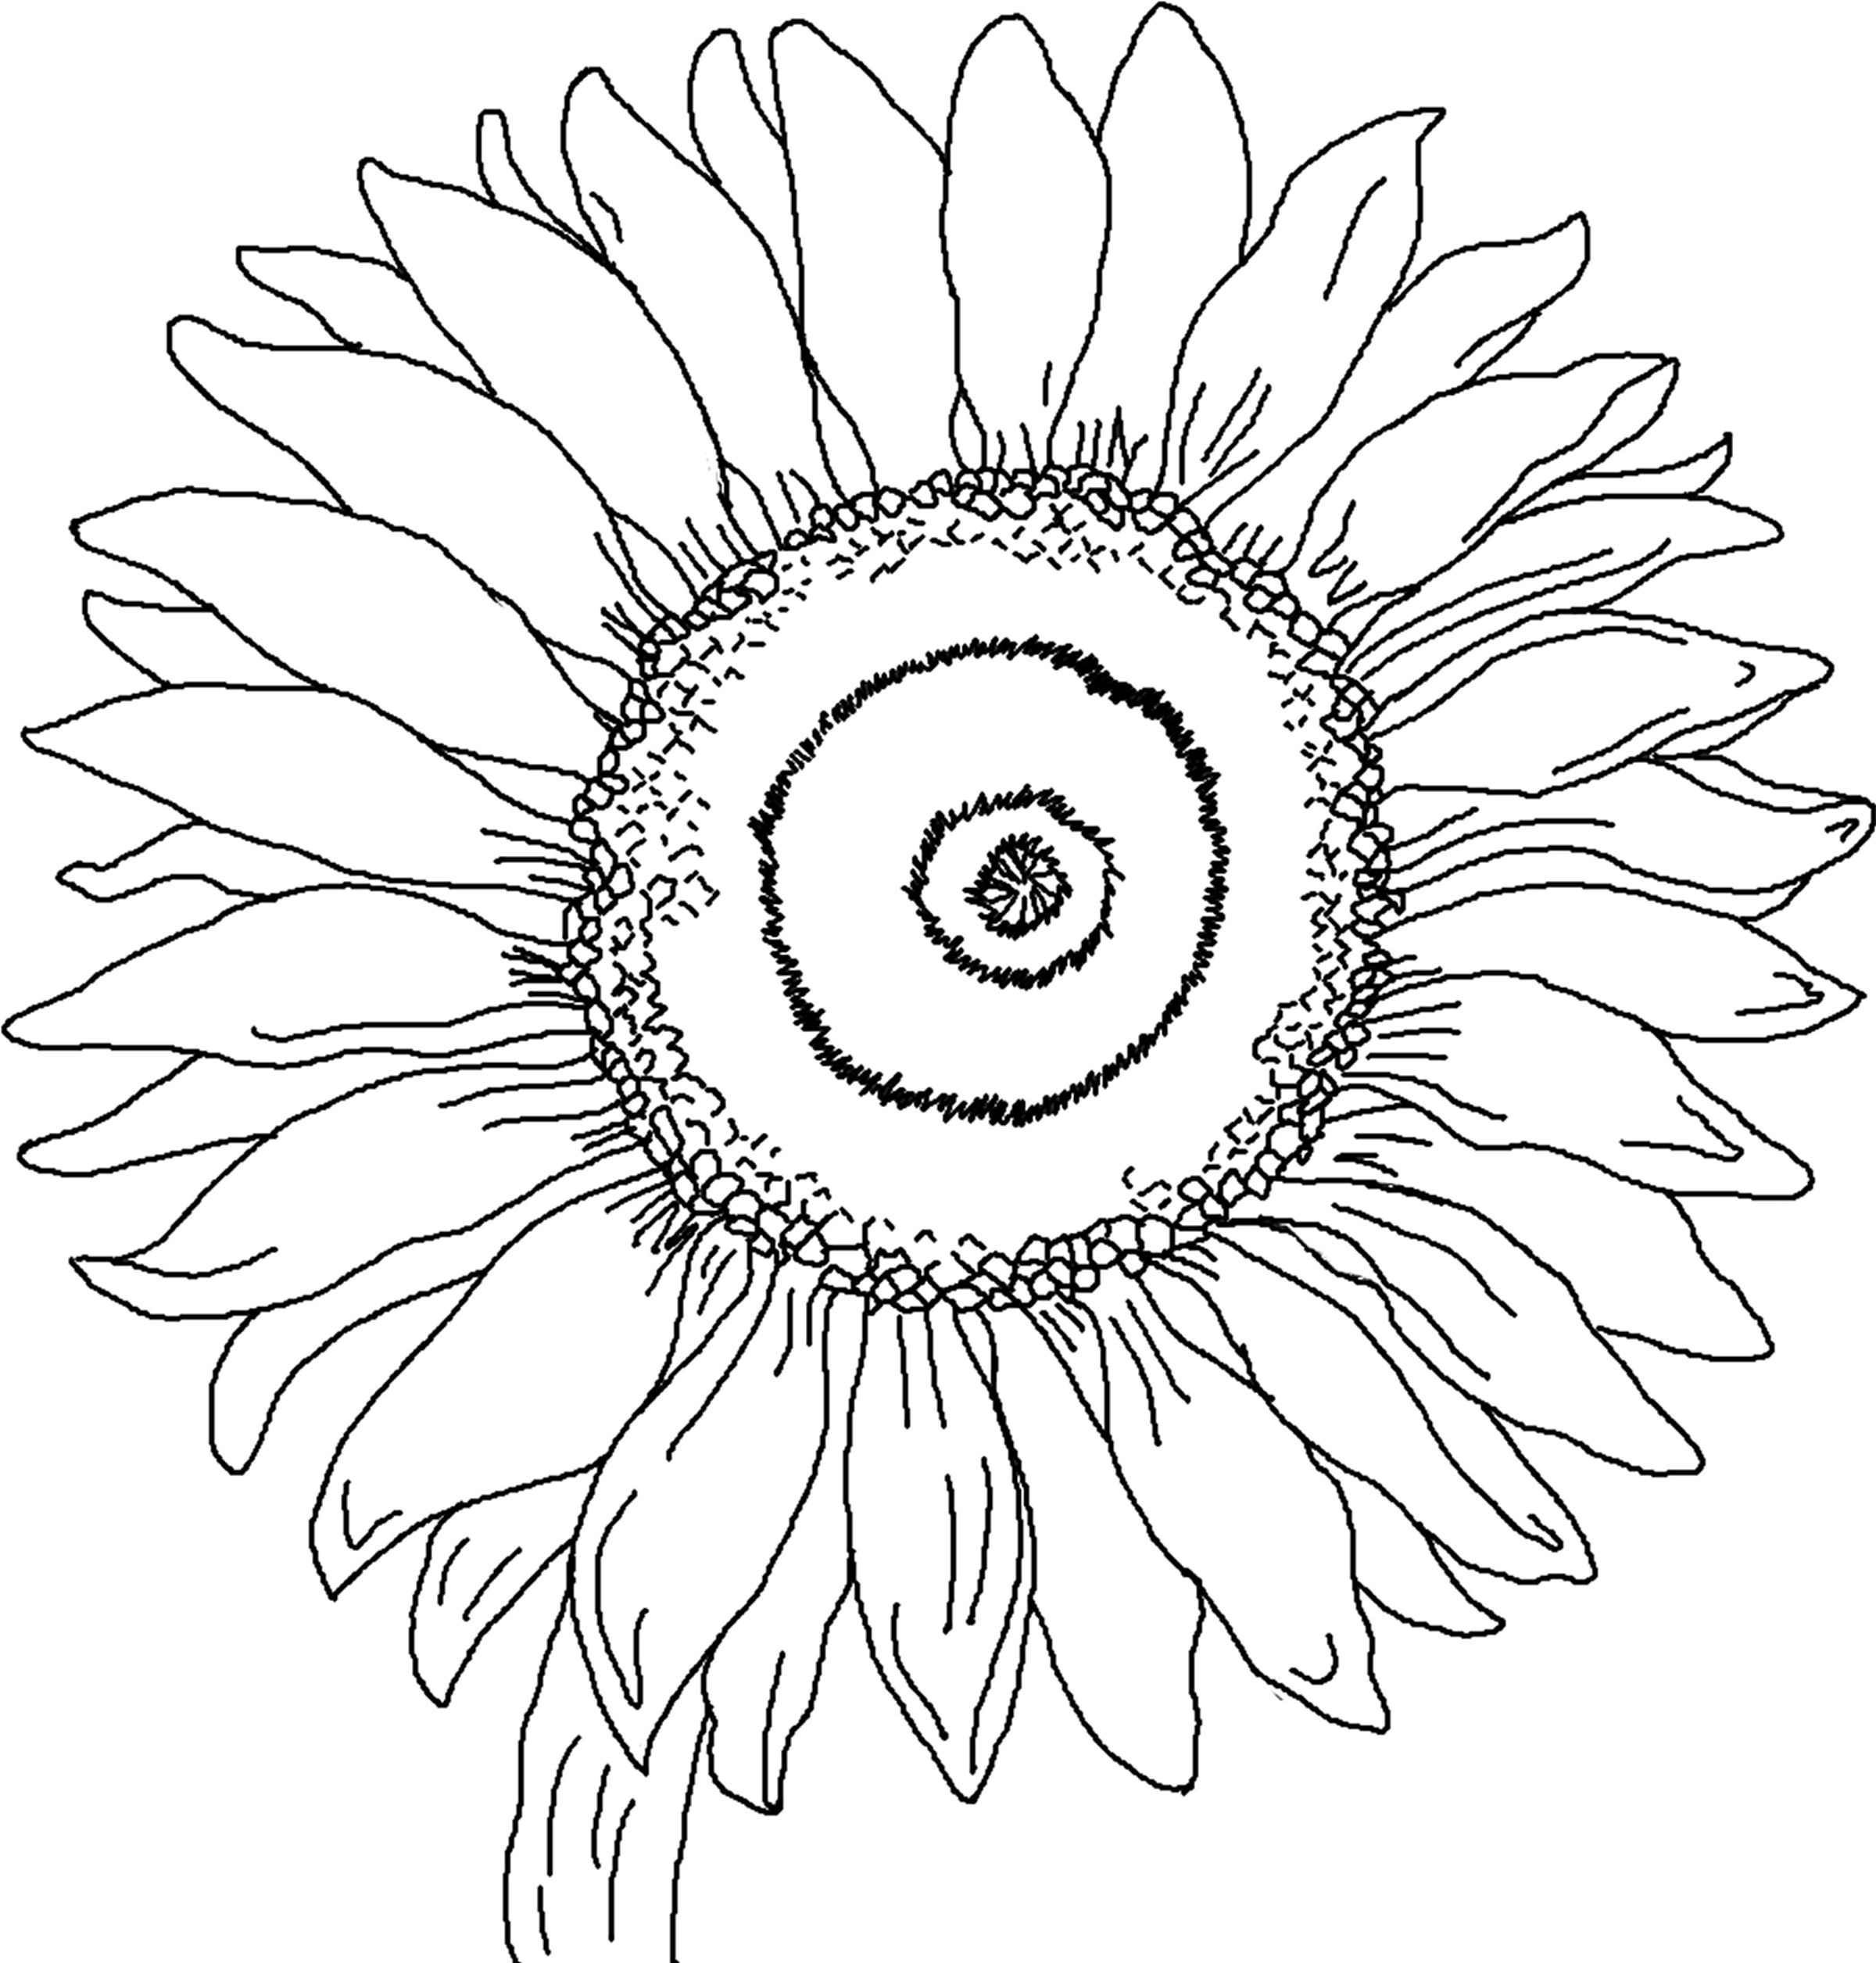 free printable flower coloring pages free printable sunflower coloring pages for kids printable free flower coloring pages